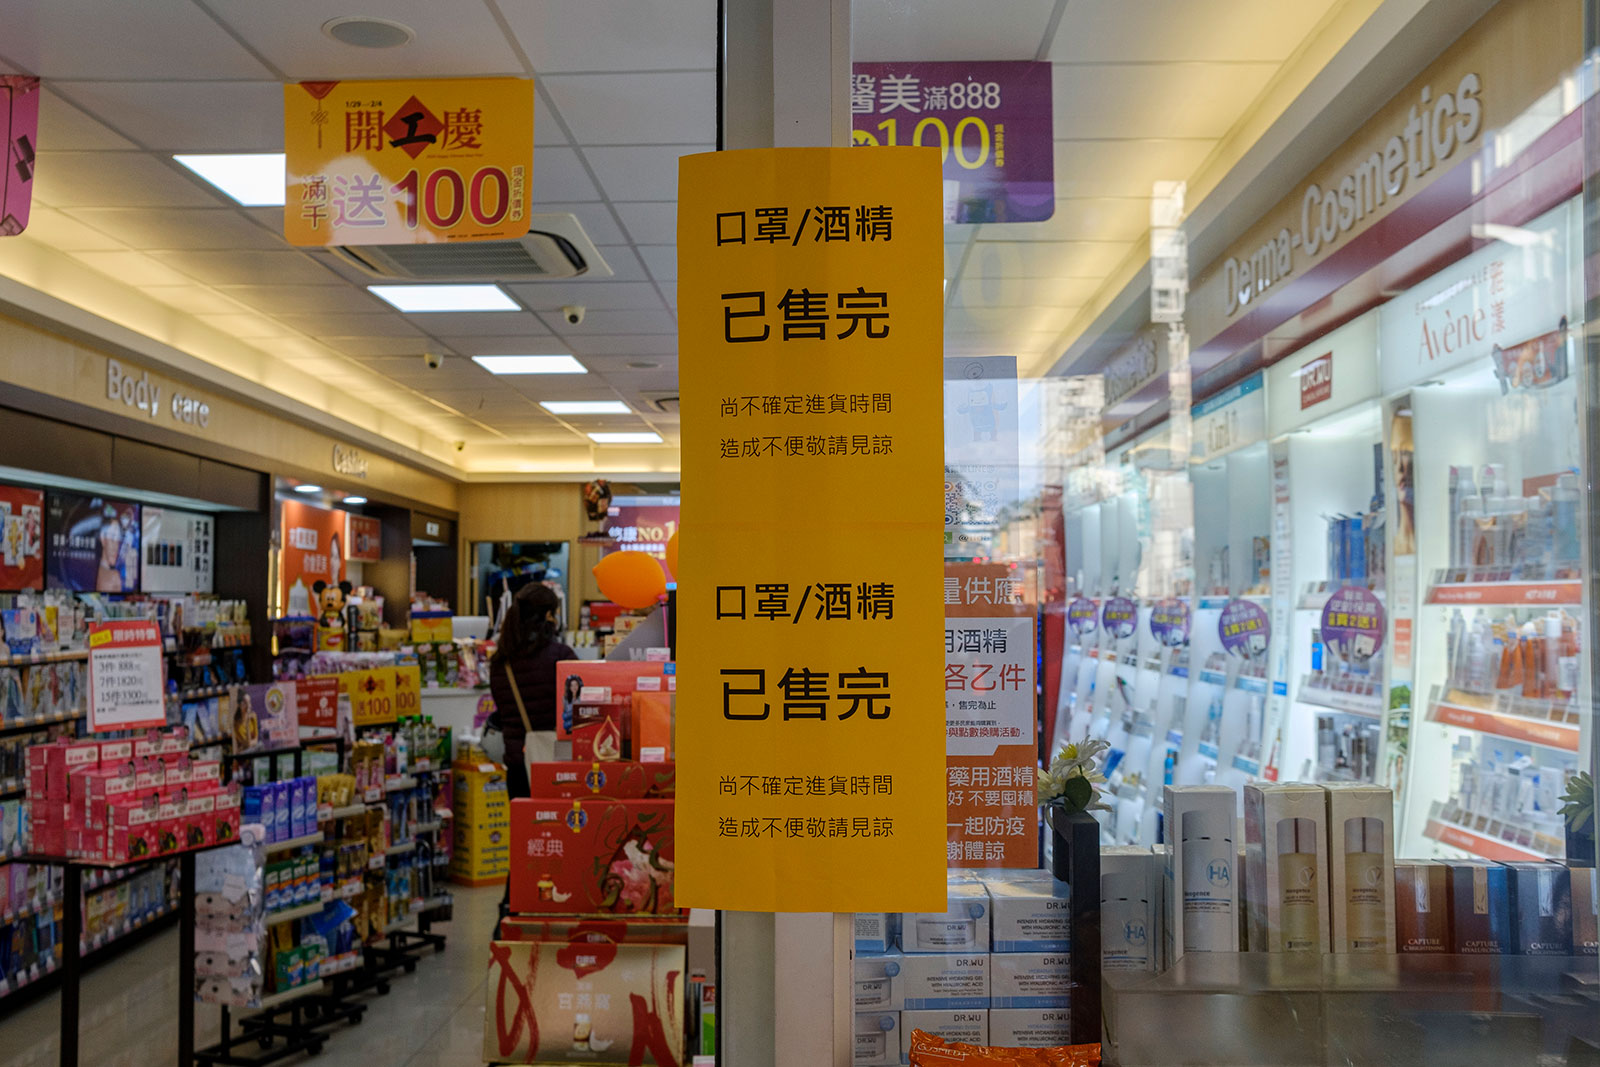 A drugstore in downtown Taipei displays a poster indicating that surgical masks, face masks and alcohol are sold out.